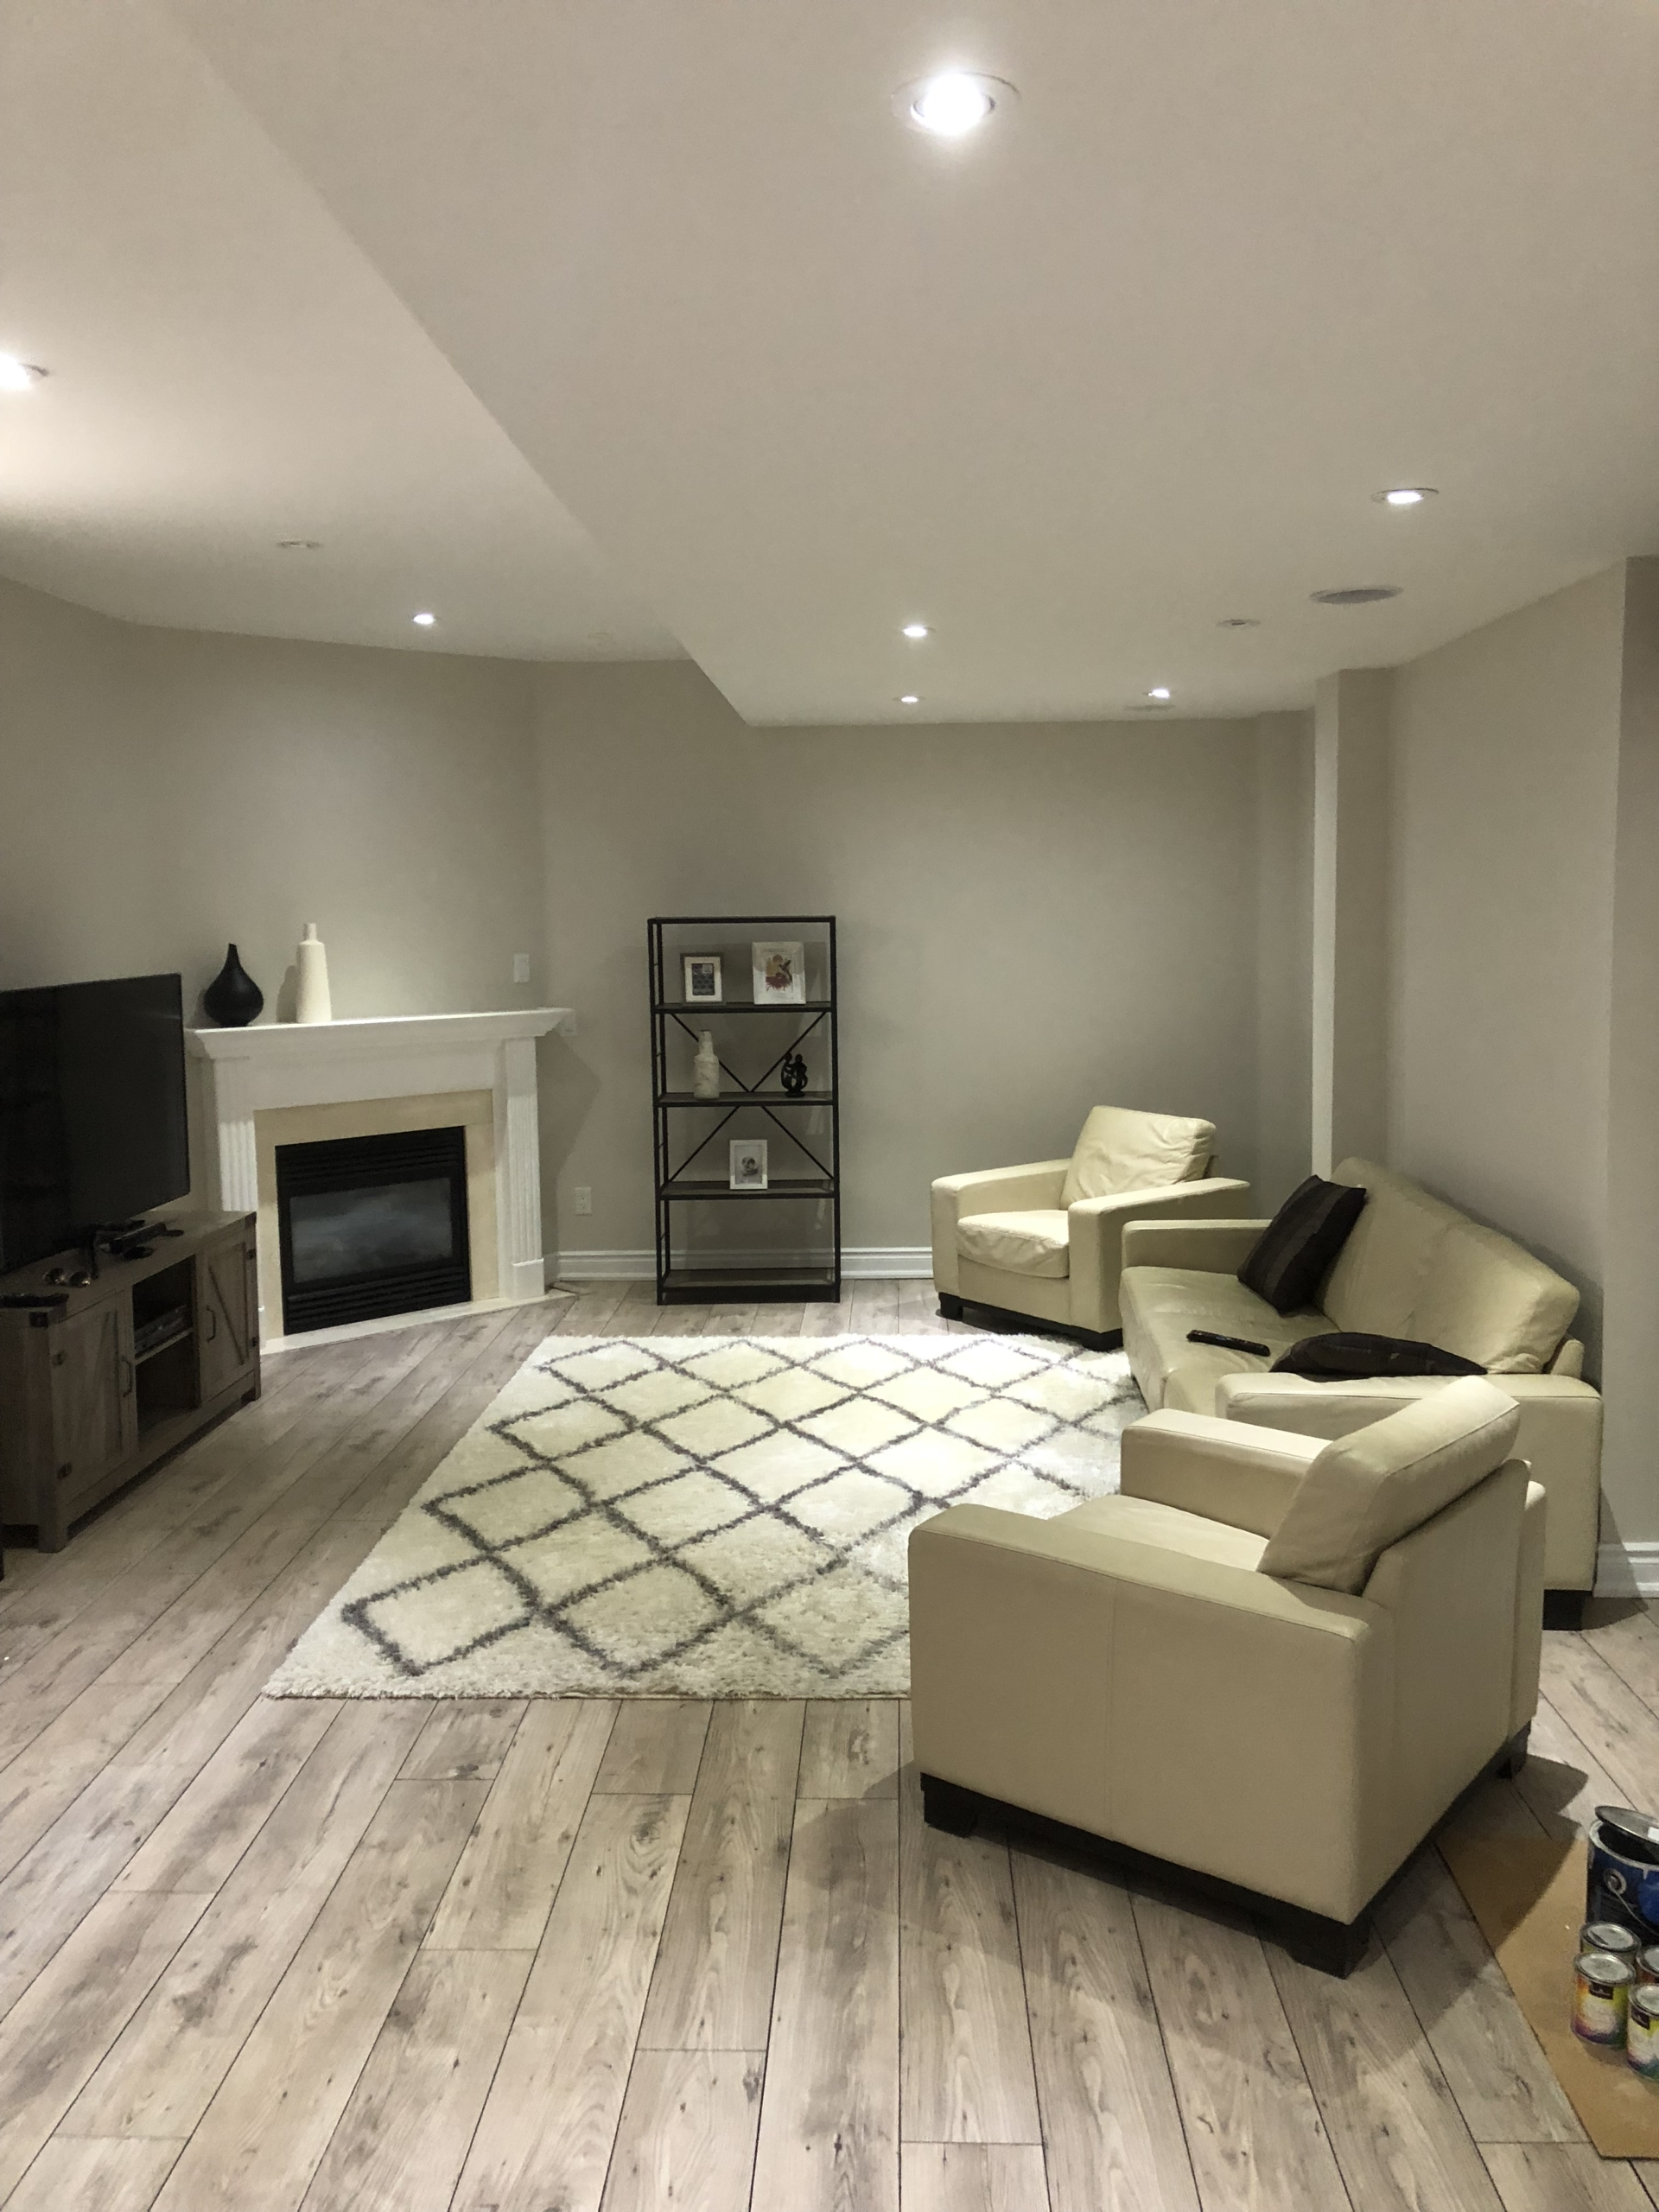 Basement Full Renovation (5)